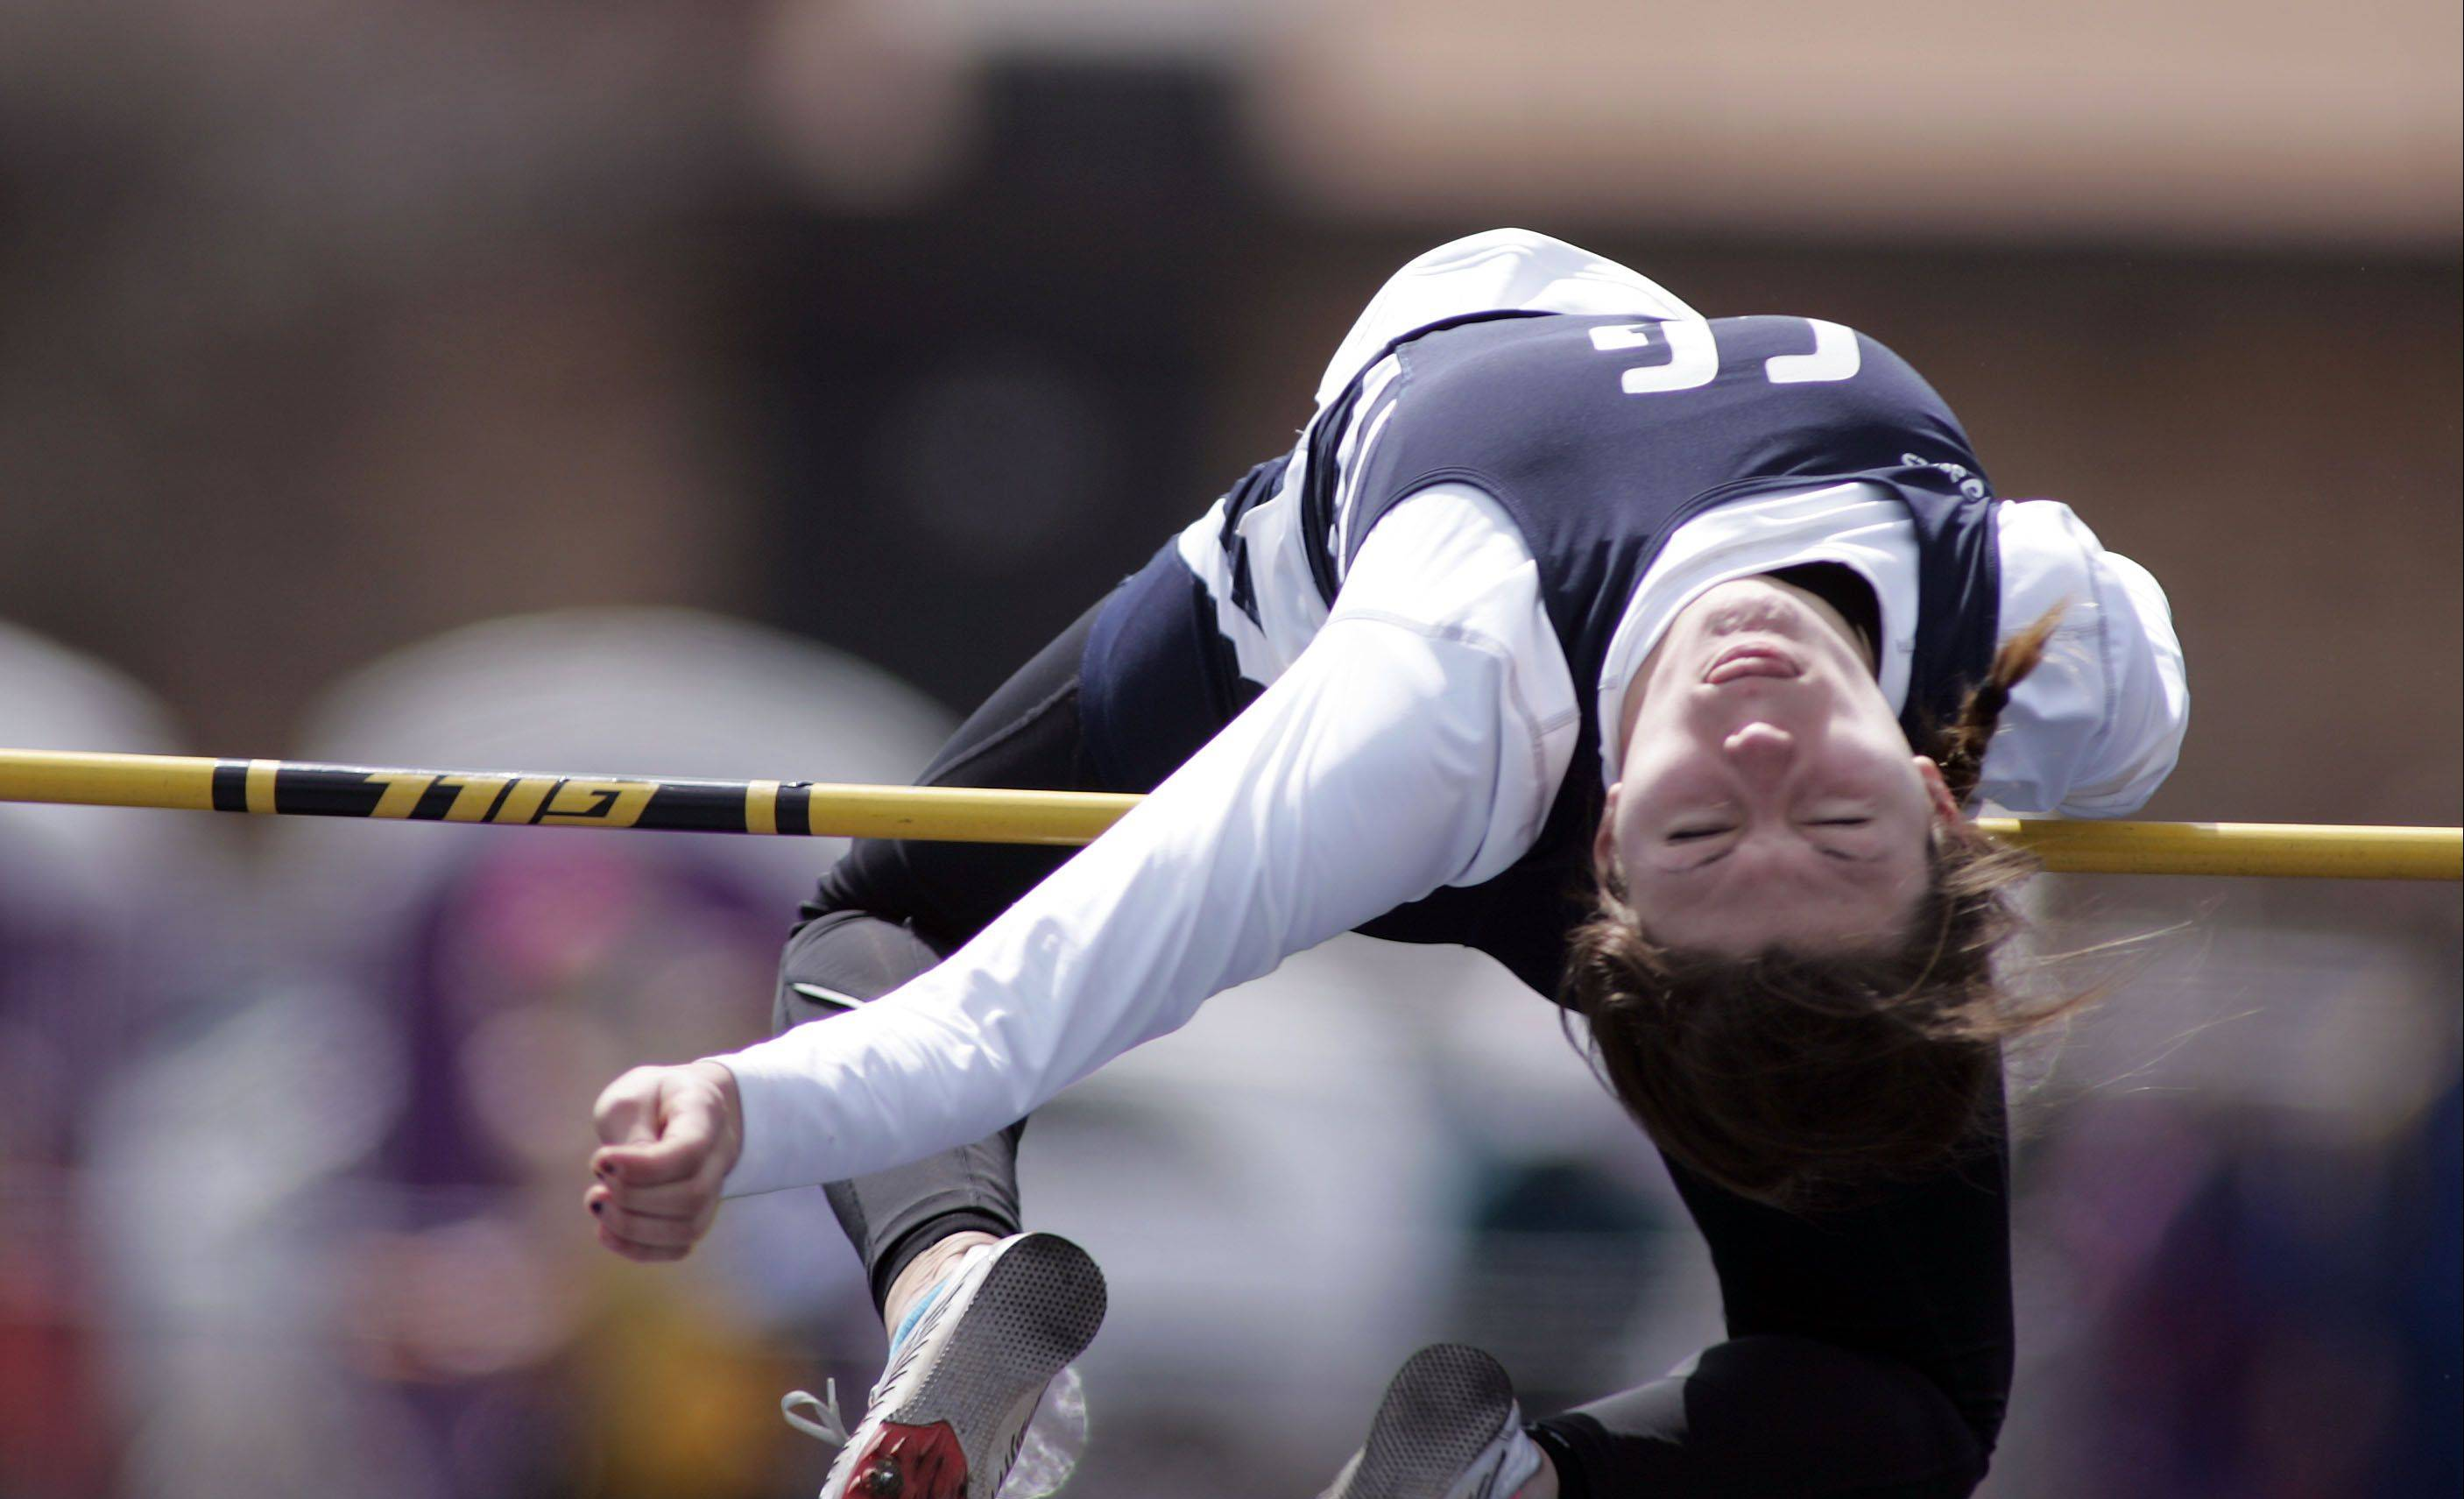 Cary-Grove's Erika Sternard launches herself into the air as she competes in the high jump during the McHenry County boys and girls track meet Saturday at Cary-Grove High School in Cary.